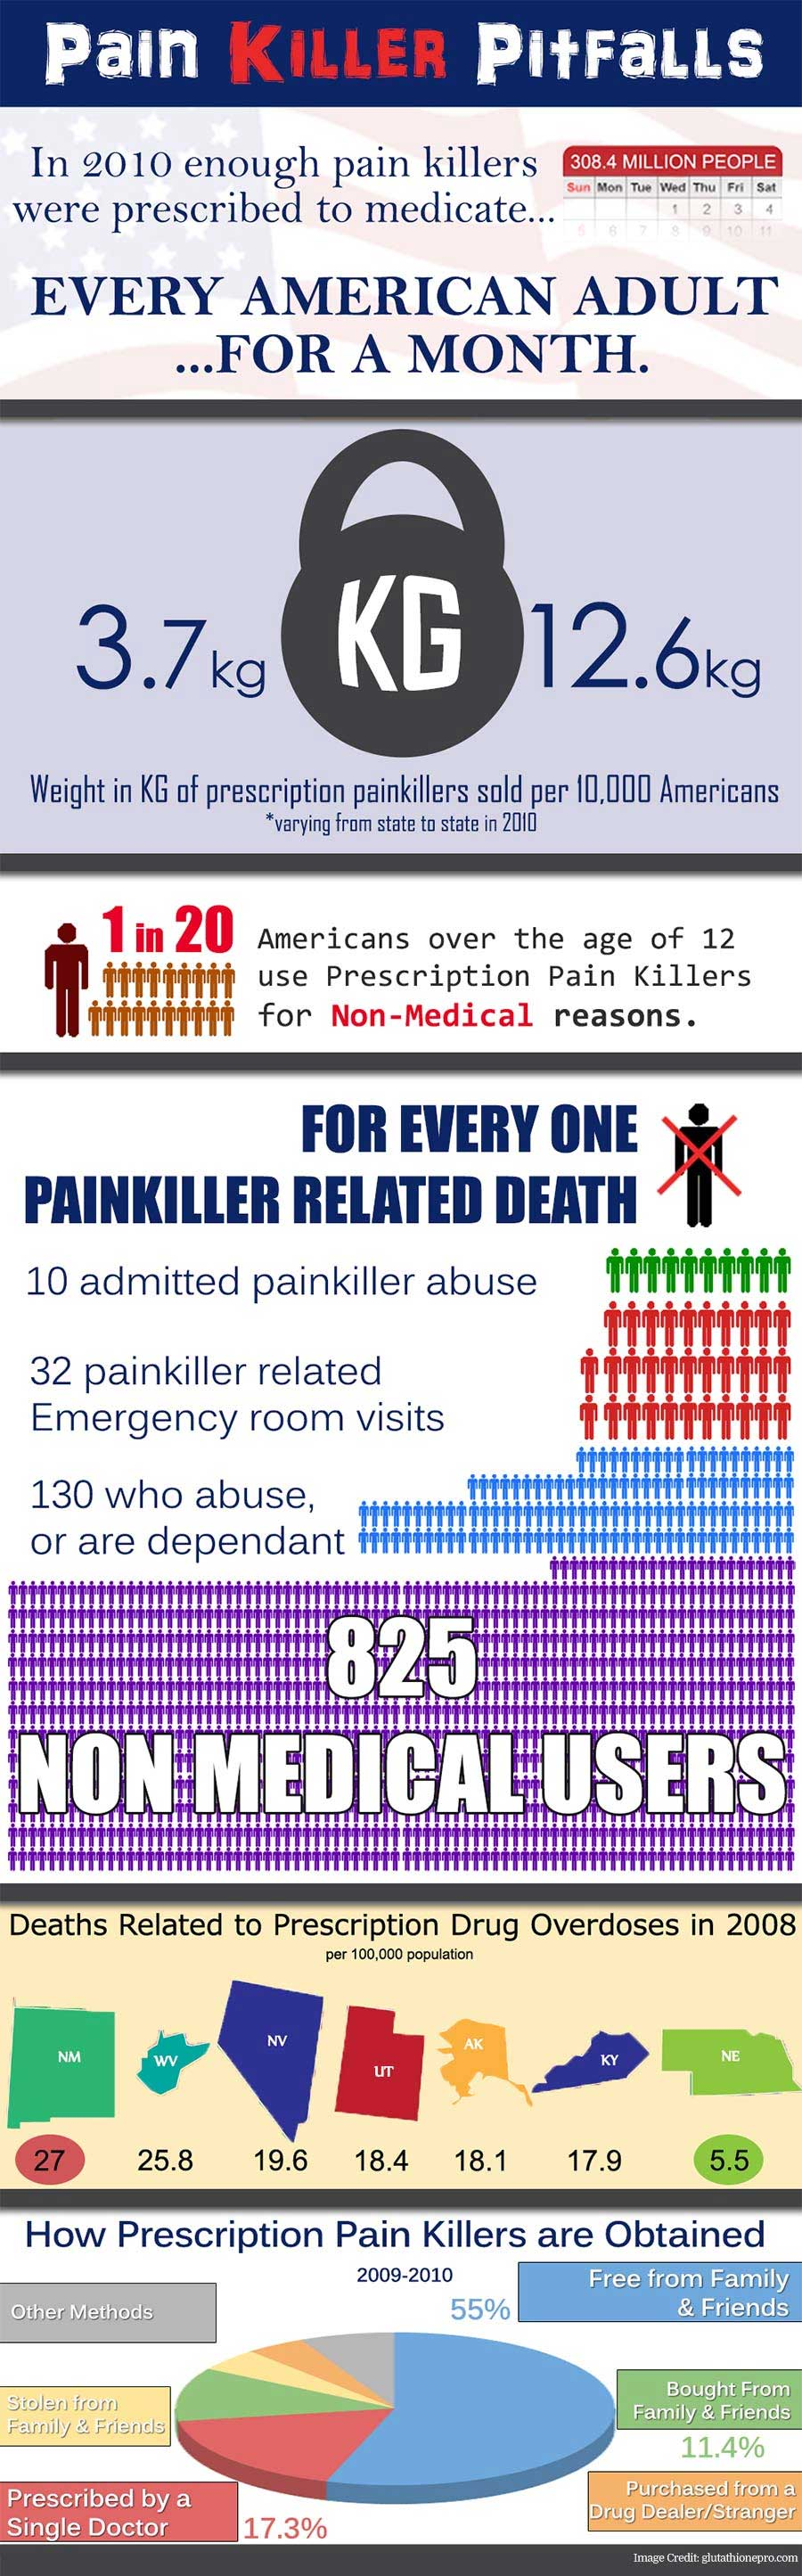 Pain in the Painkiller